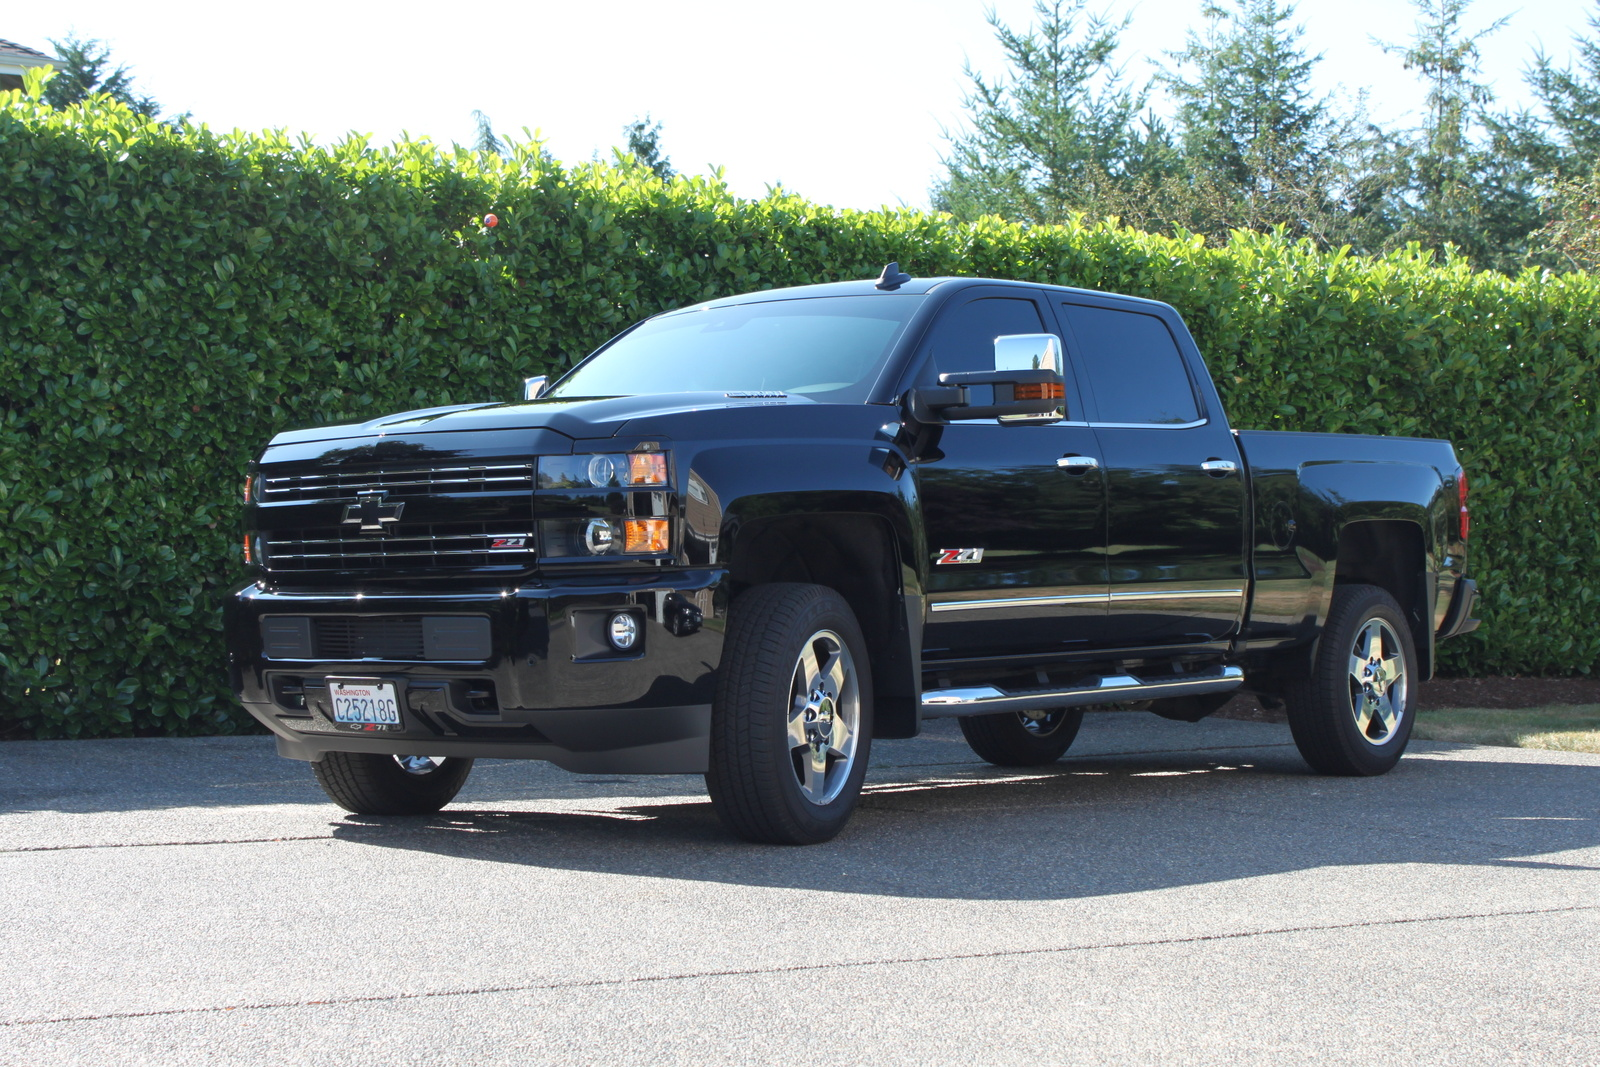 Chevrolet silverado 2500hd questions towing capacity 2016 how do these trucks have the ability to pull 18k again i dont think im an idiot but i just cant figure this out what am i missing help publicscrutiny Images